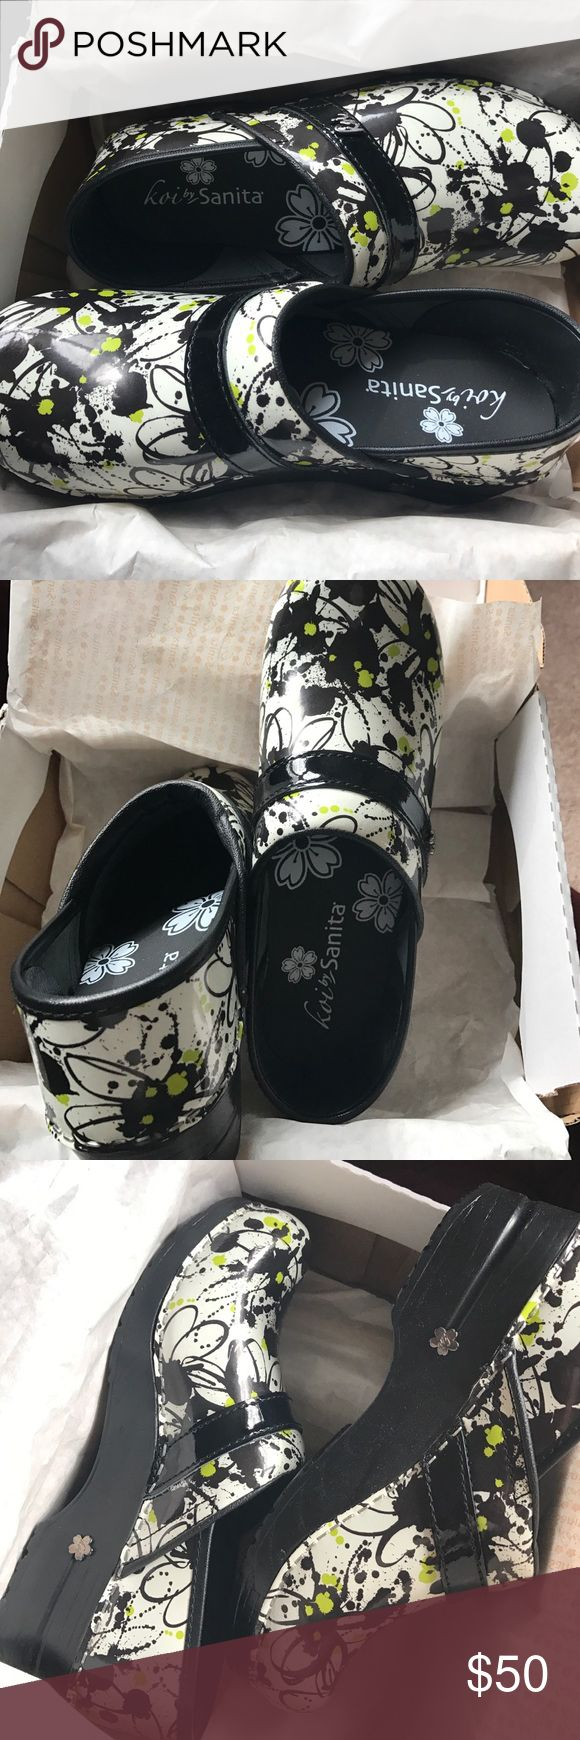 Koi by Sanita Women's Clogs Brand new women's clogs, discontinued pattern, truly original, never worn! Koi by Sanita Shoes Mules & Clogs